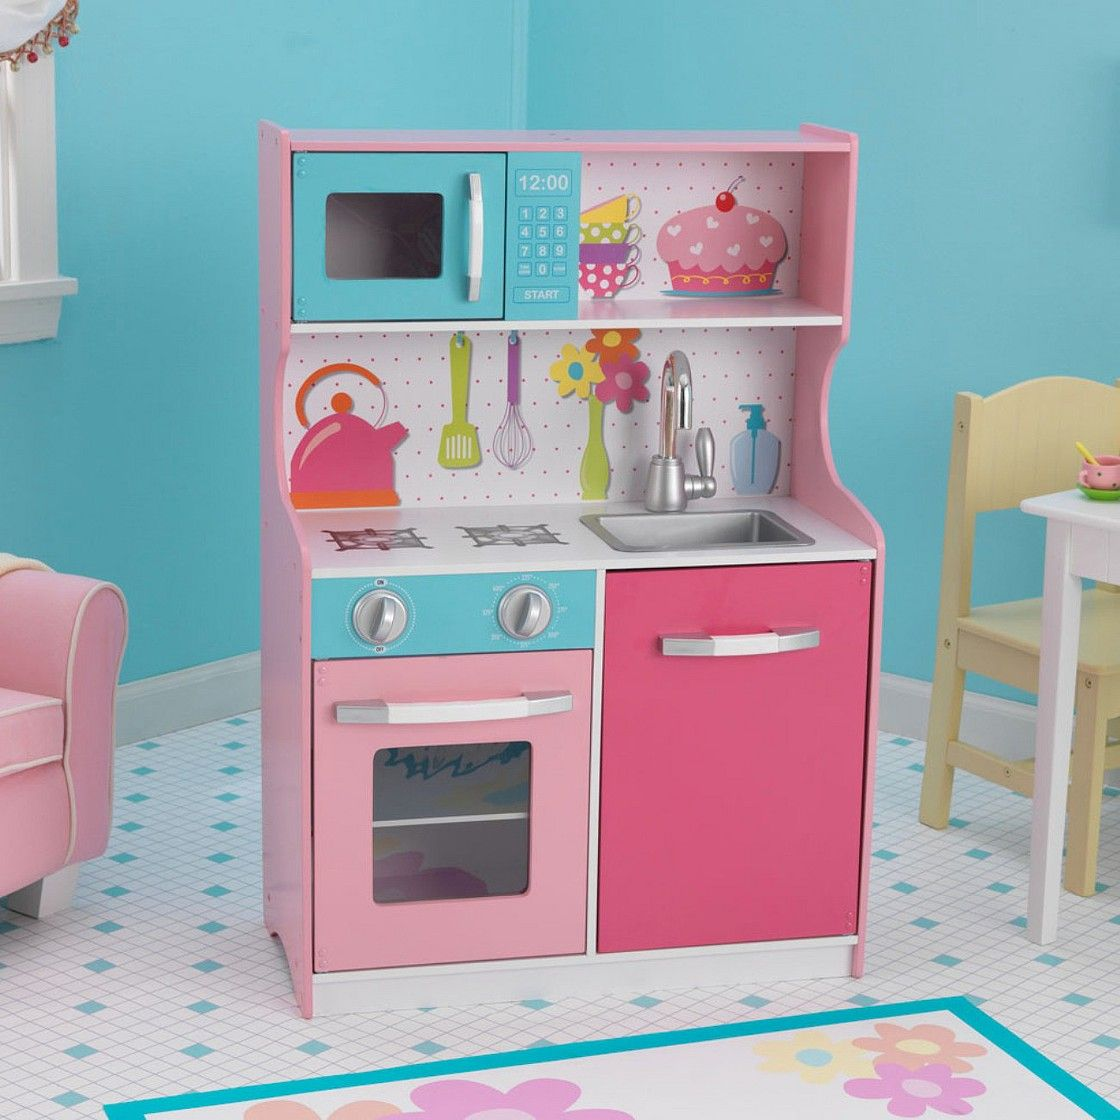 Circo Wooden Pretend Play Kitchen | Kiera\'s Xmas | Pinterest ...